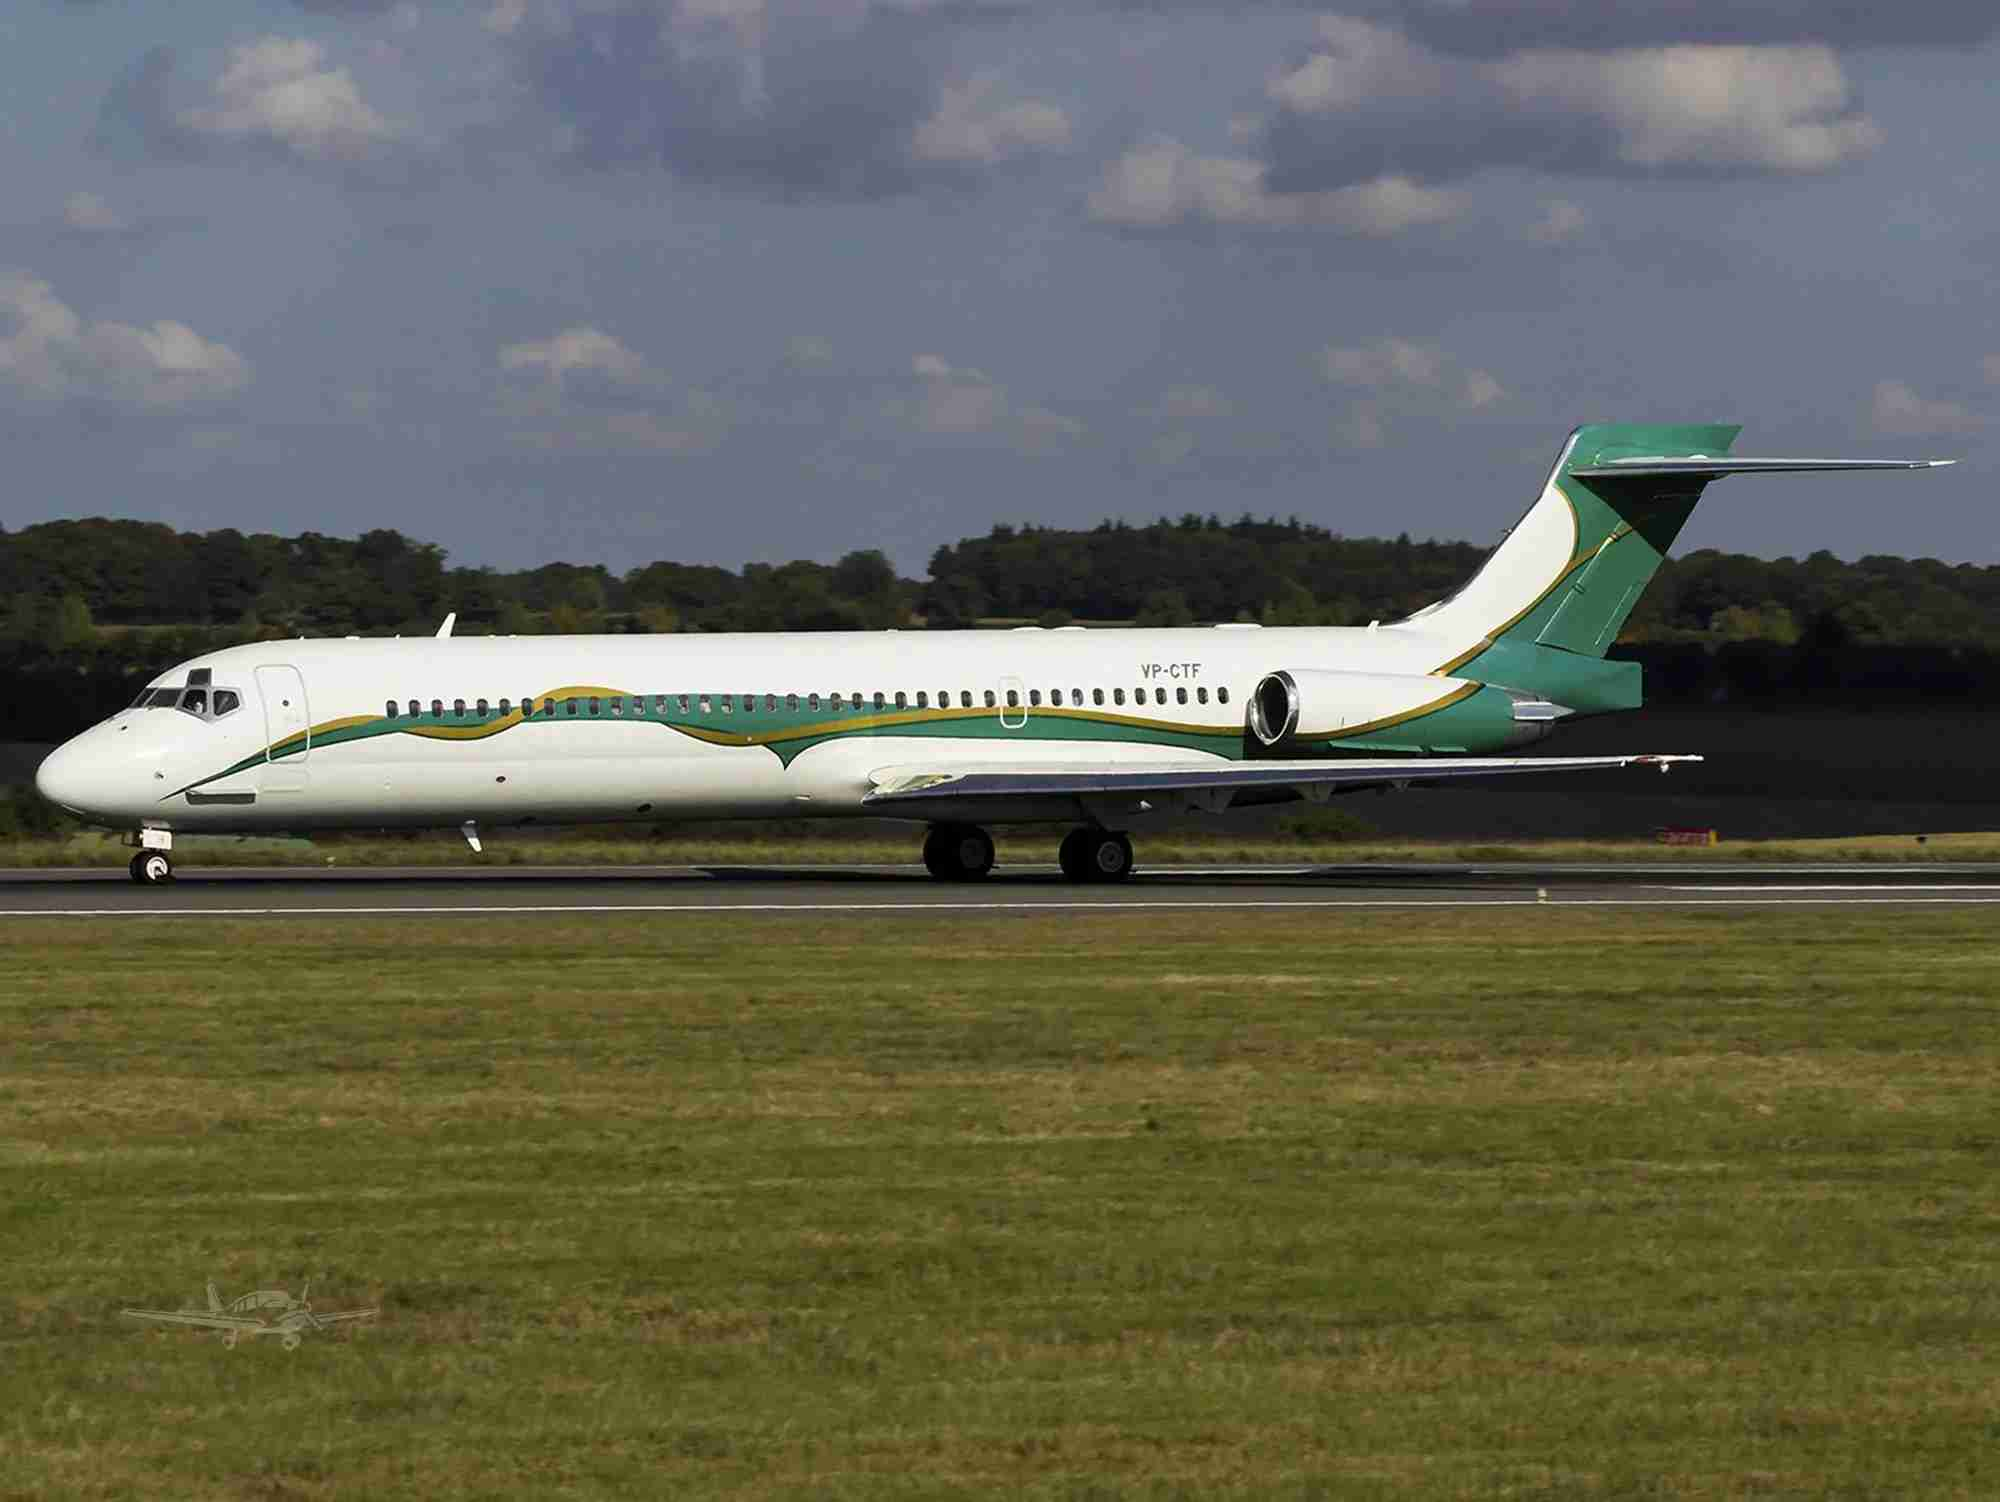 A 1989 McDonnell-Douglas MD-87 in its current livery. (Image courtesy of Bloomer deVere Dahlfors, Inc. via Controller.com)